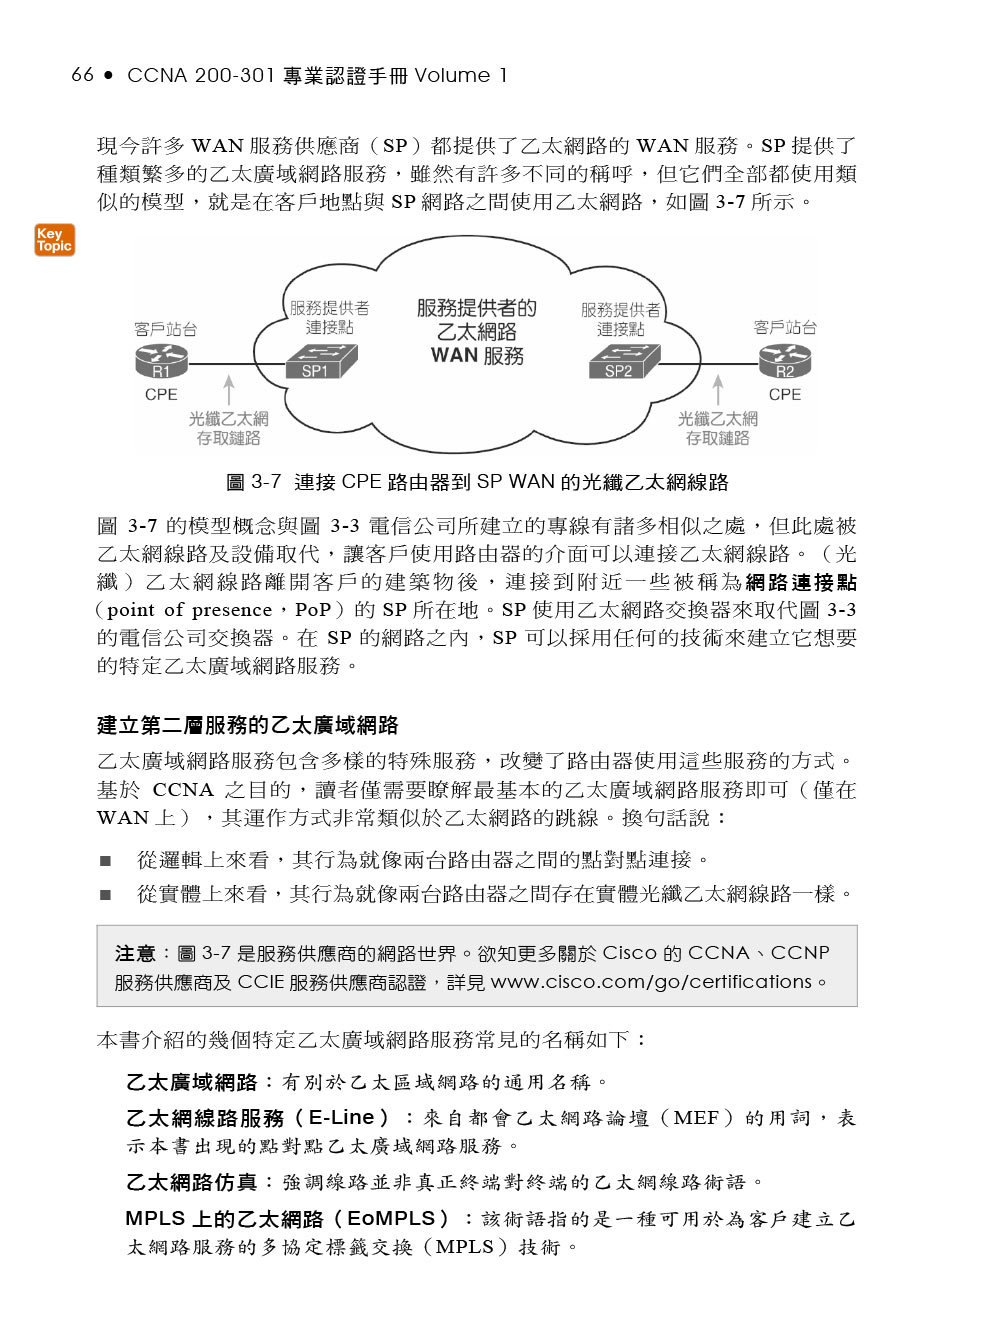 CCNA 200-301 專業認證手冊, Volume 1 (CCNA 200-301 Official Cert Guide, Volume 1)-preview-9